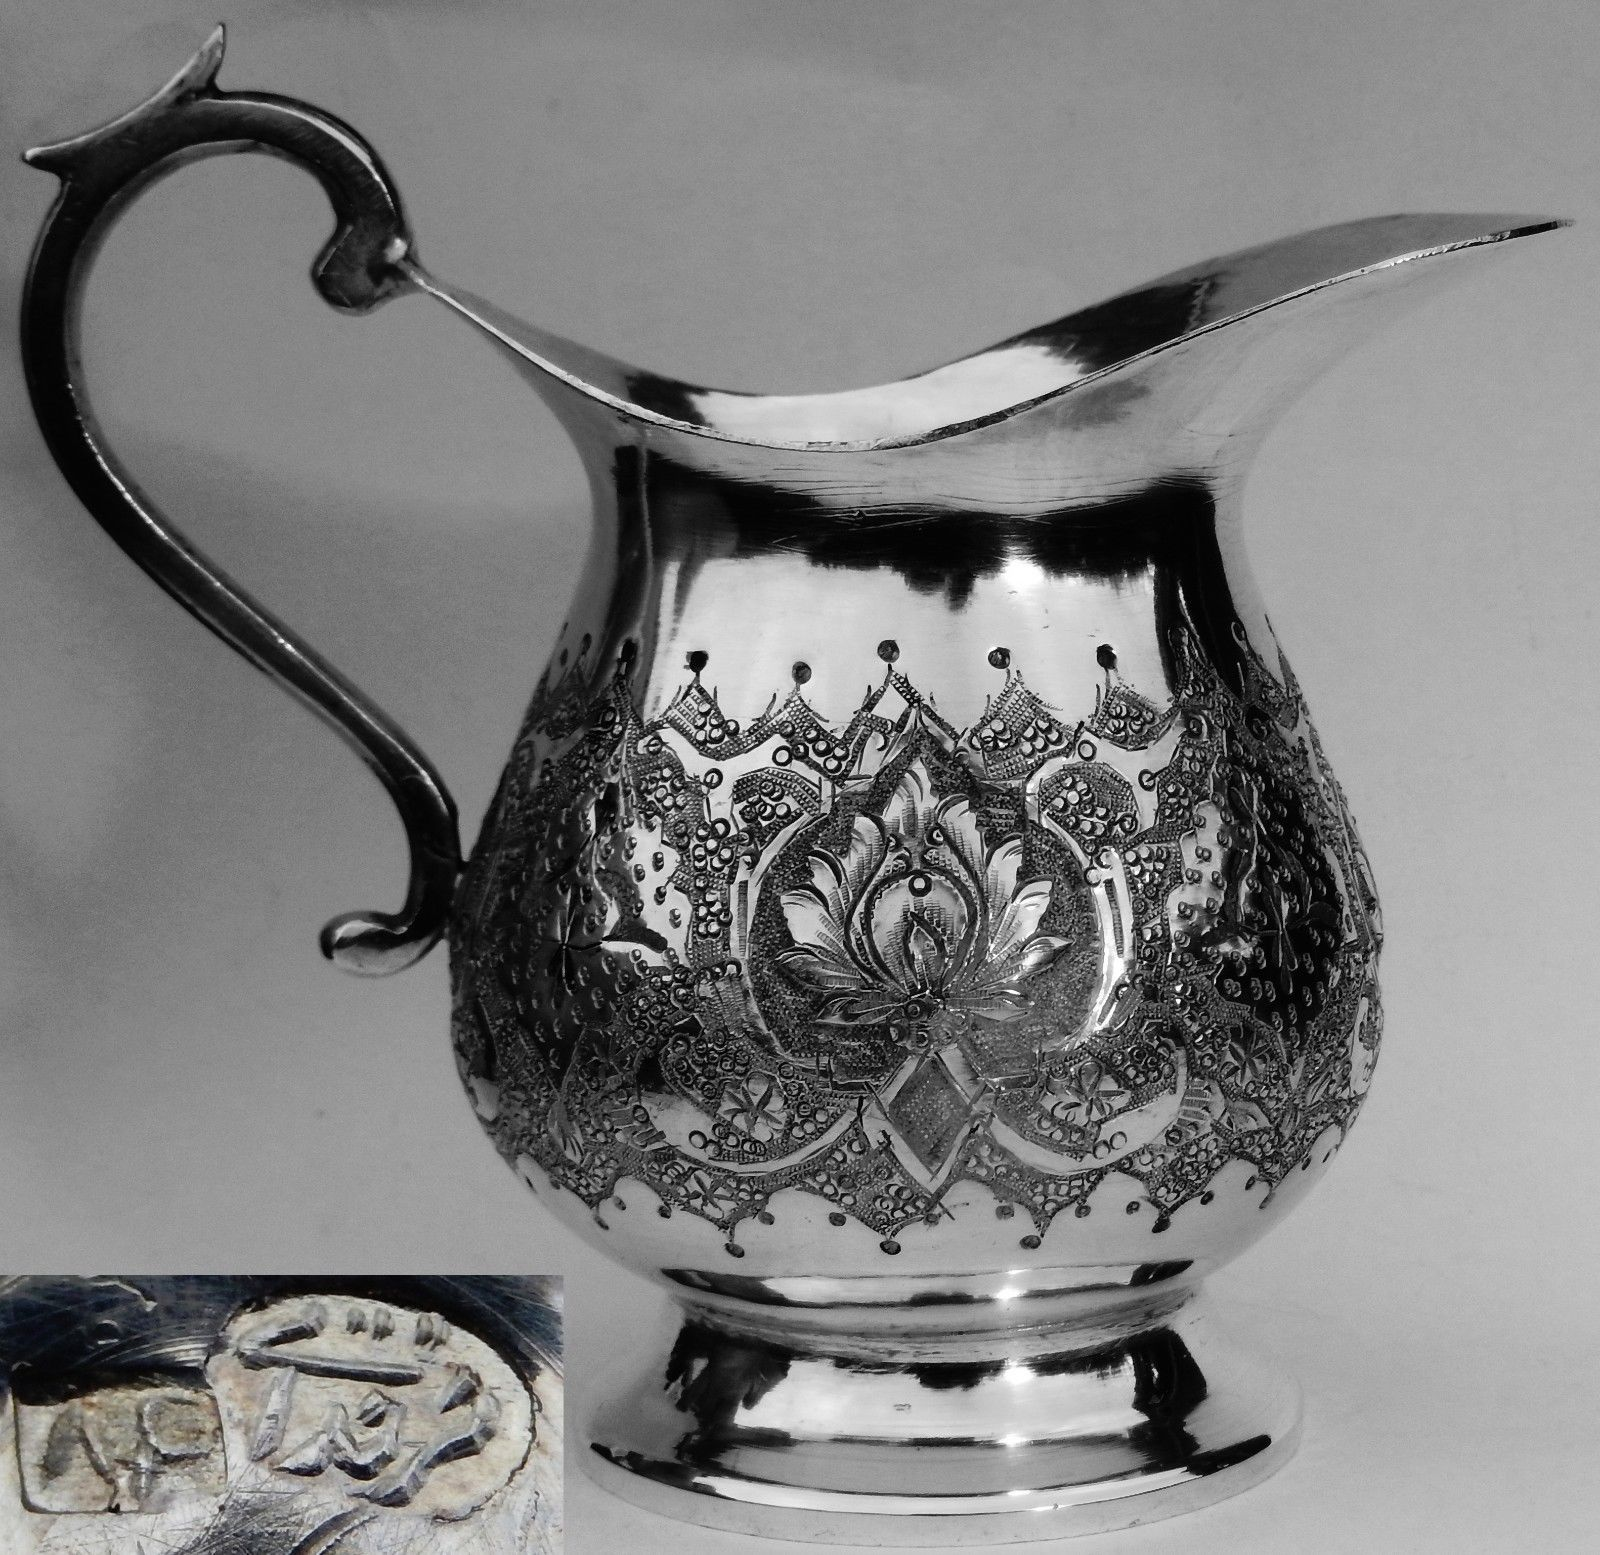 Fine Quality Antique Persian Islamic Solid Silver Jug; Heavy 168g https://t.co/qXUZkBUr2t https://t.co/vH9dCc1aW5